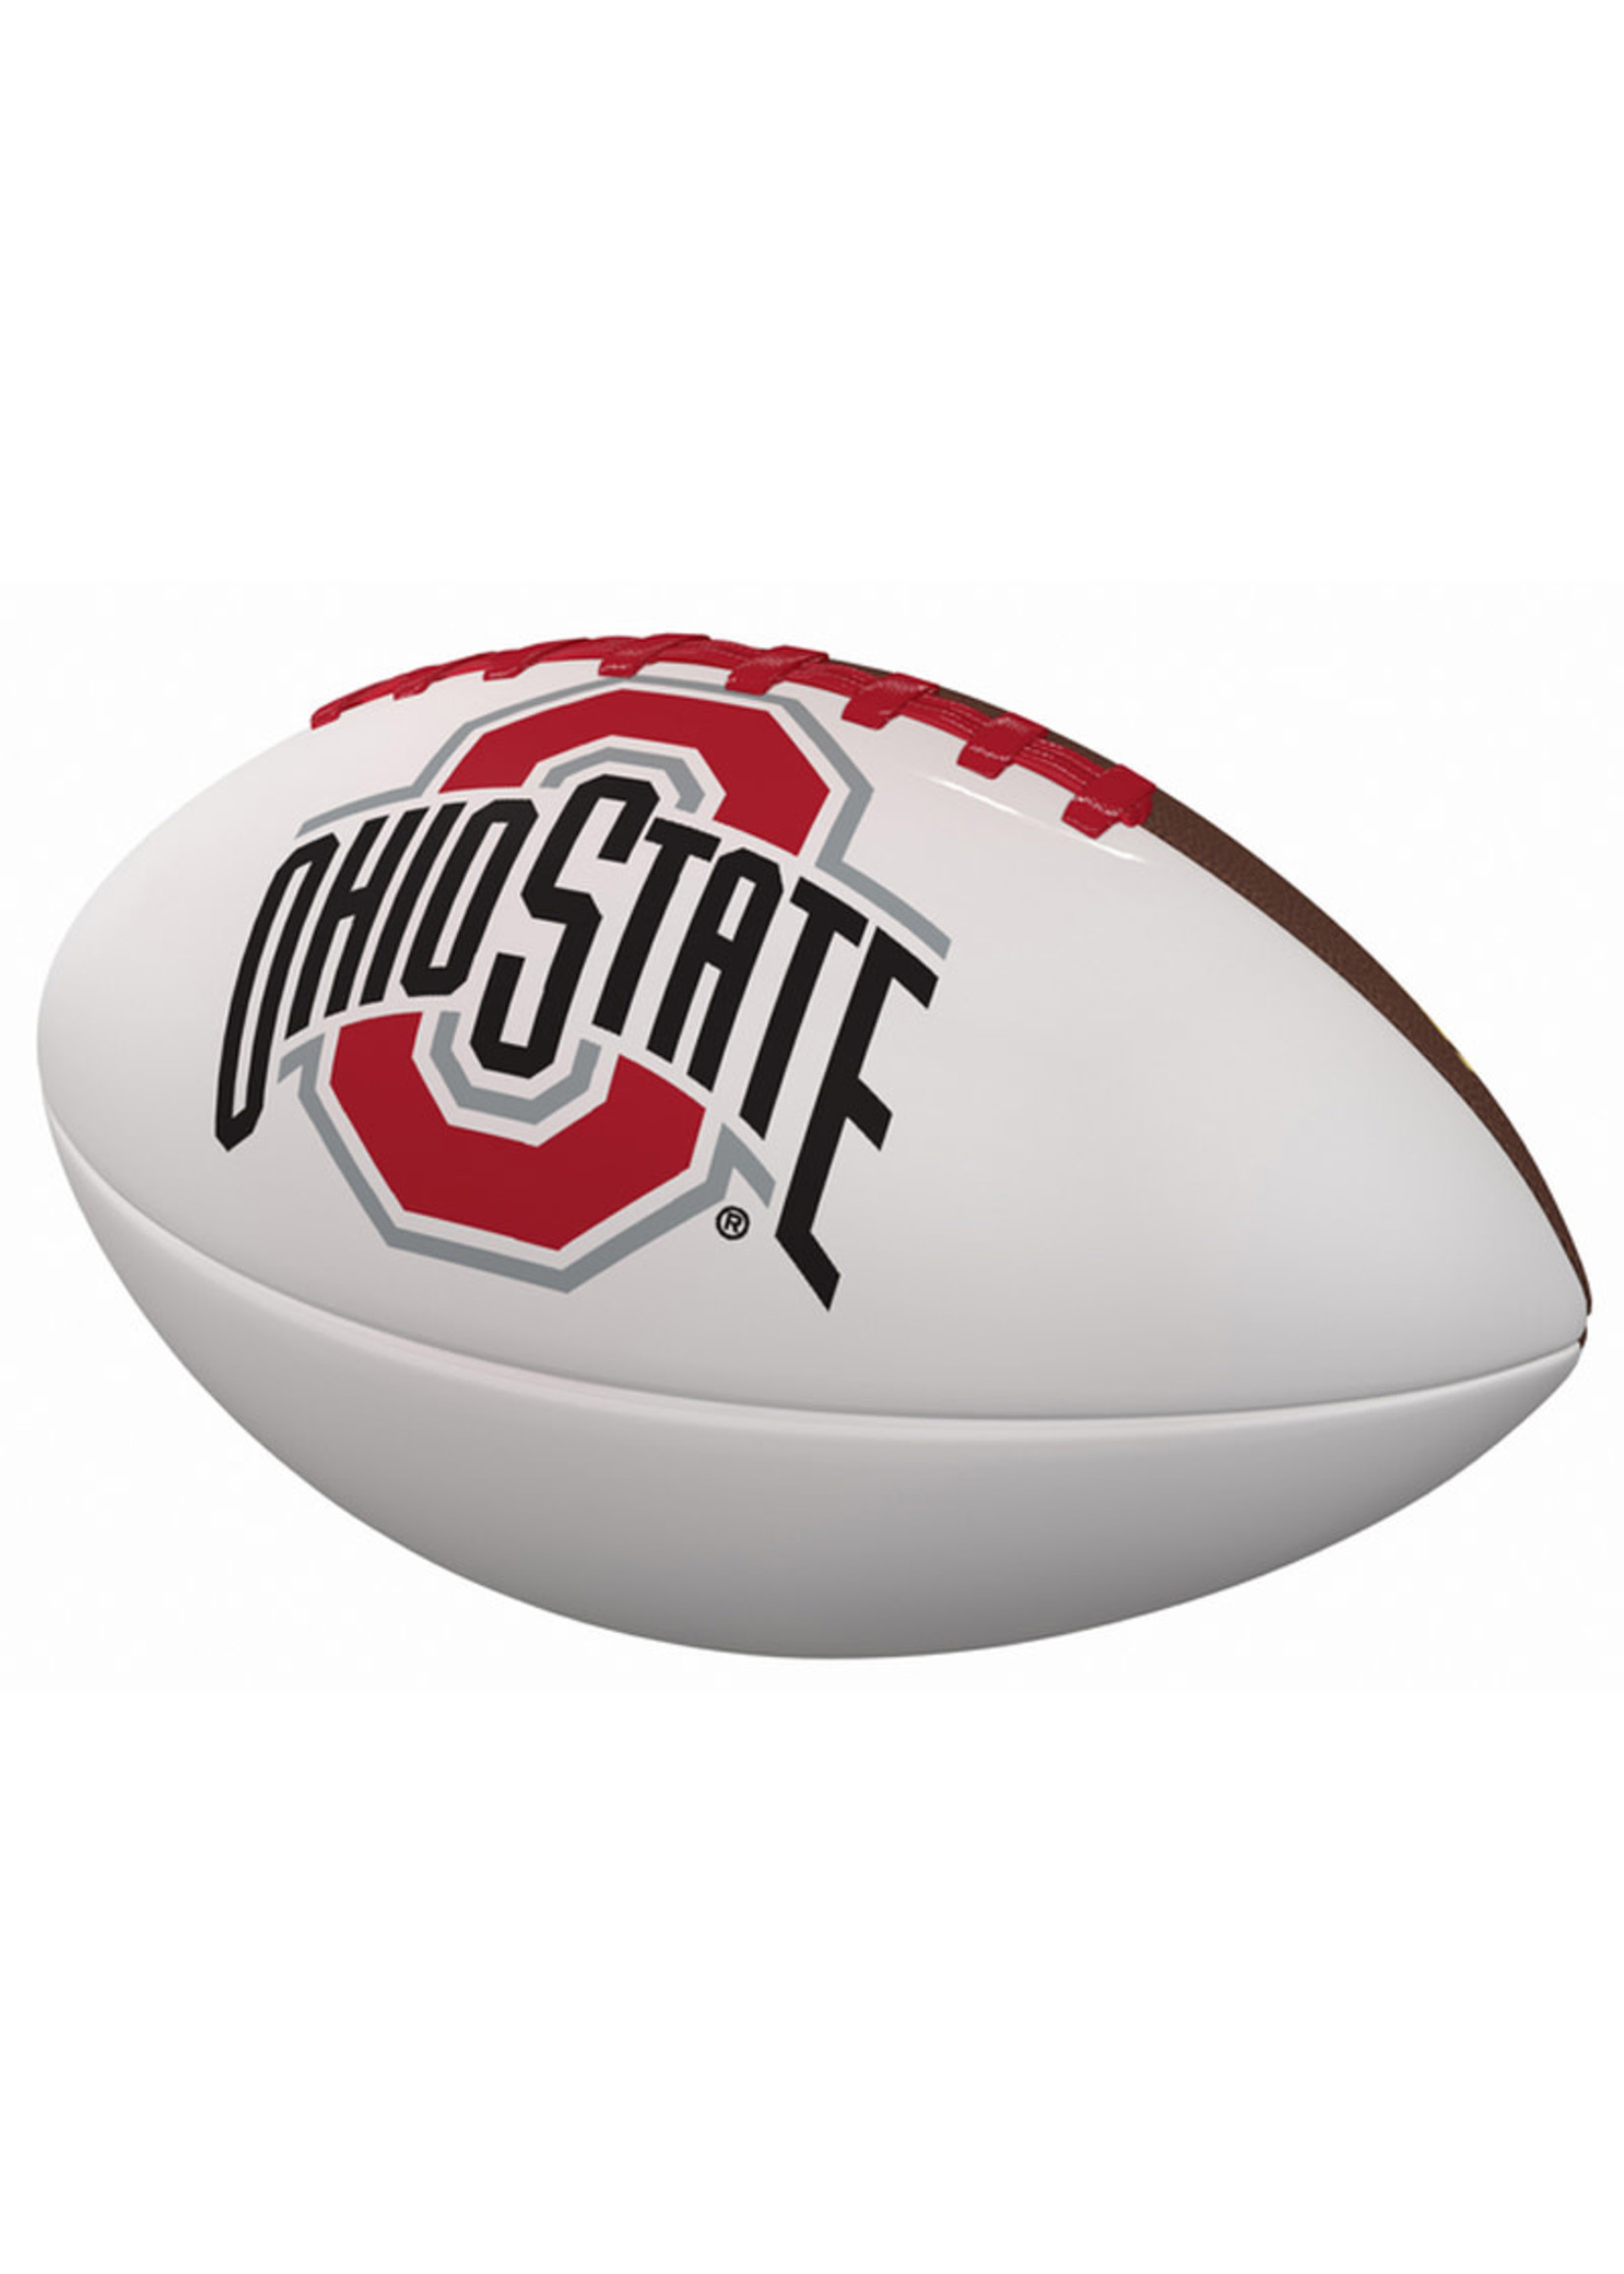 Ohio State Buckeyes Official-Size Autograph Football